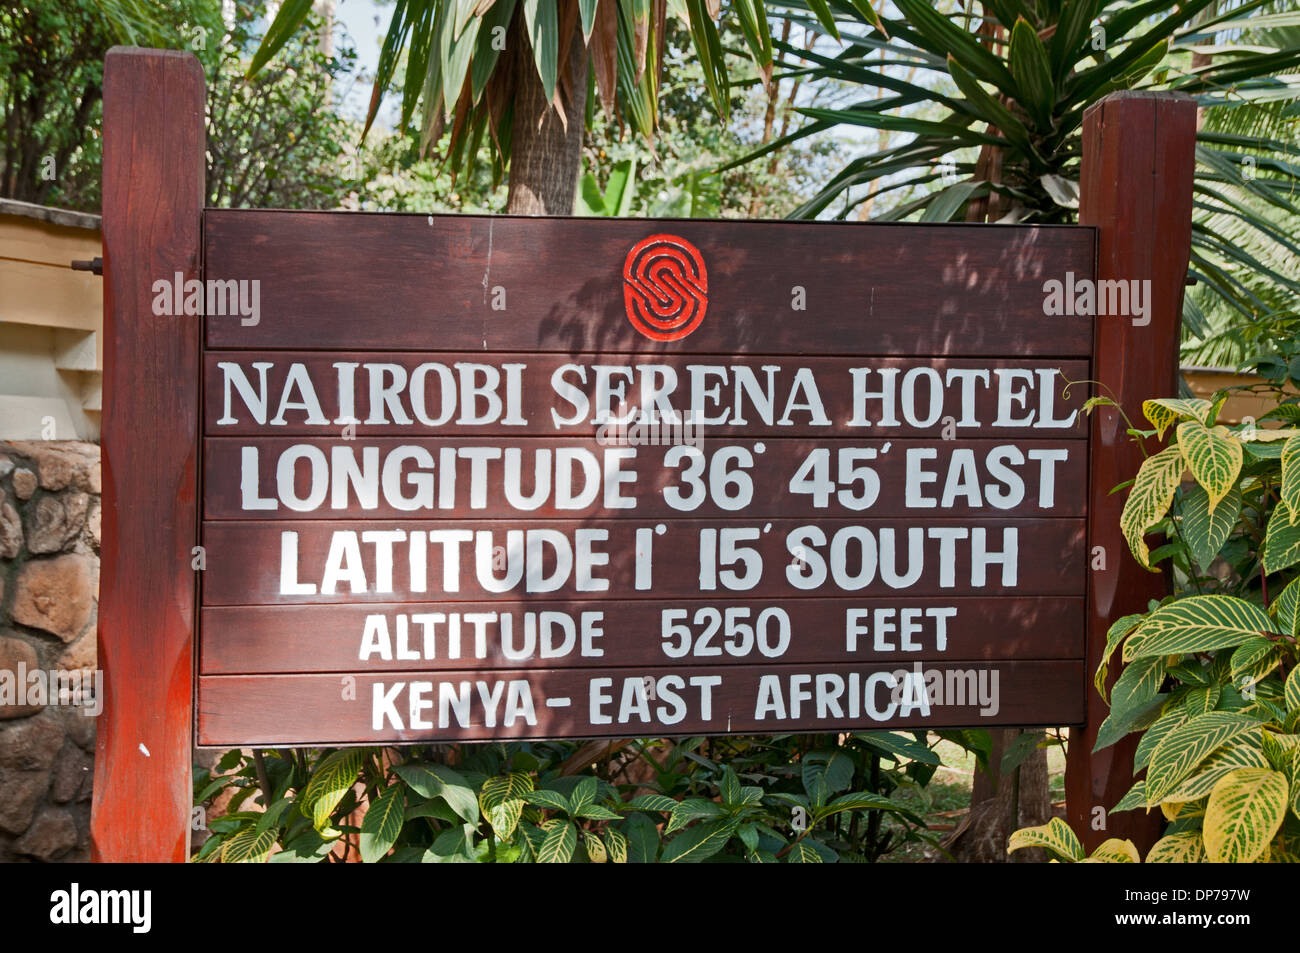 Notice board at entrance to Nairobi Serena Hotel Nairobi Kenya Africa showing details of altitude longitude and - Stock Image